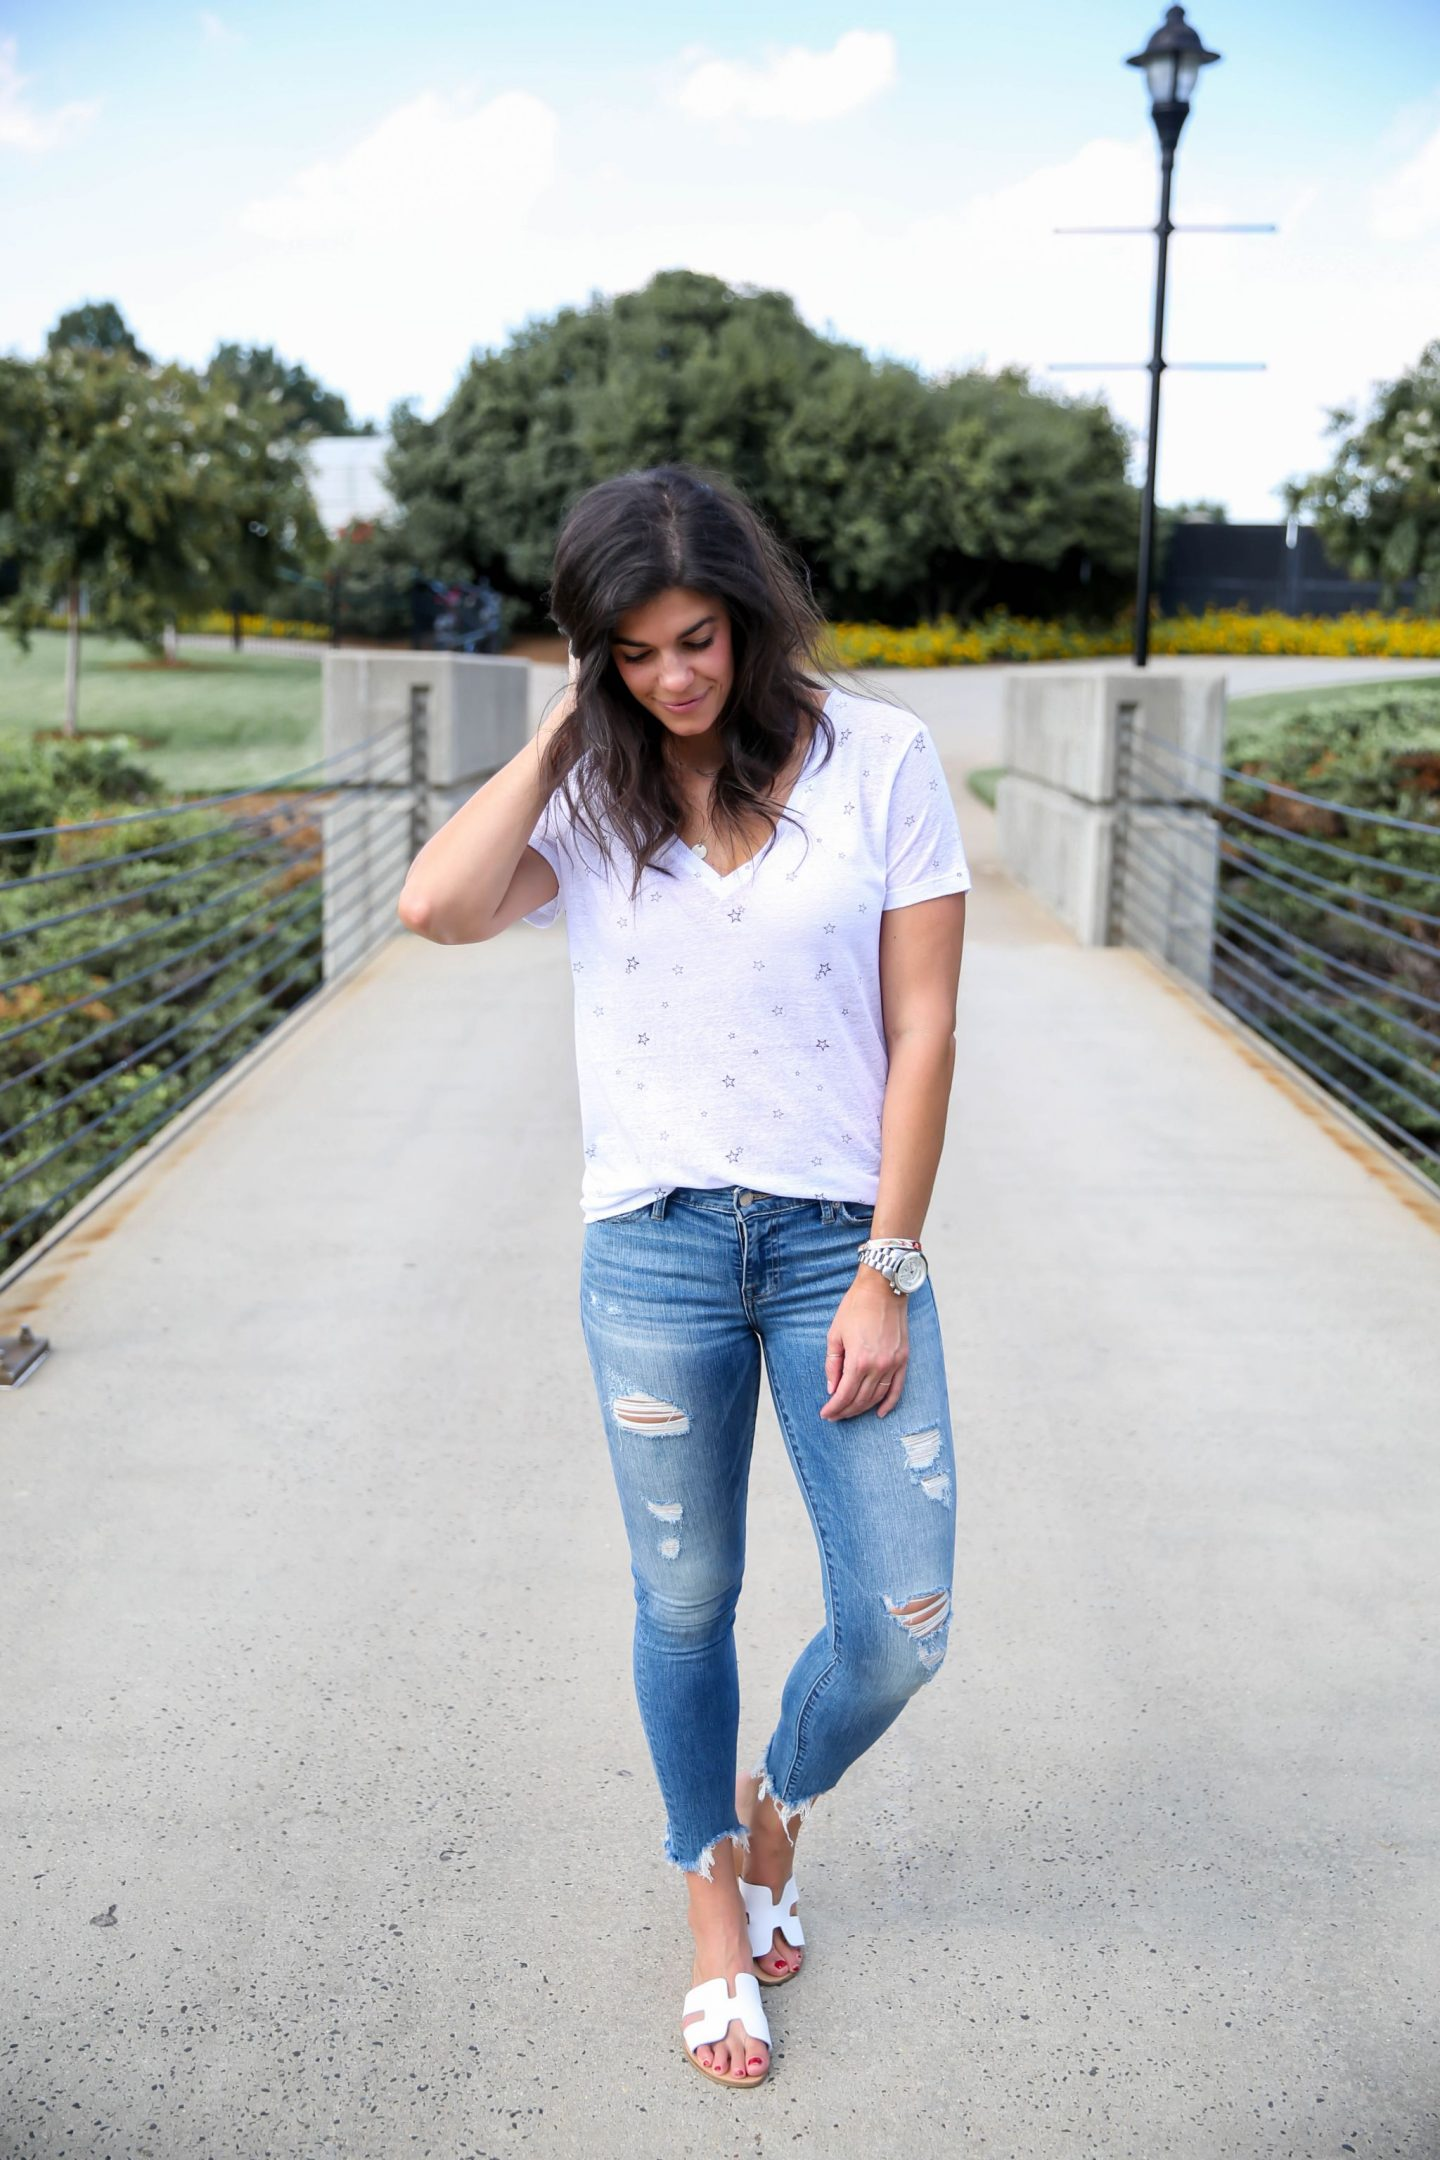 Lucky Brand Ripped Skinny Jeans - Star Tee Shirt - Lauren Schwaiger Style Blog